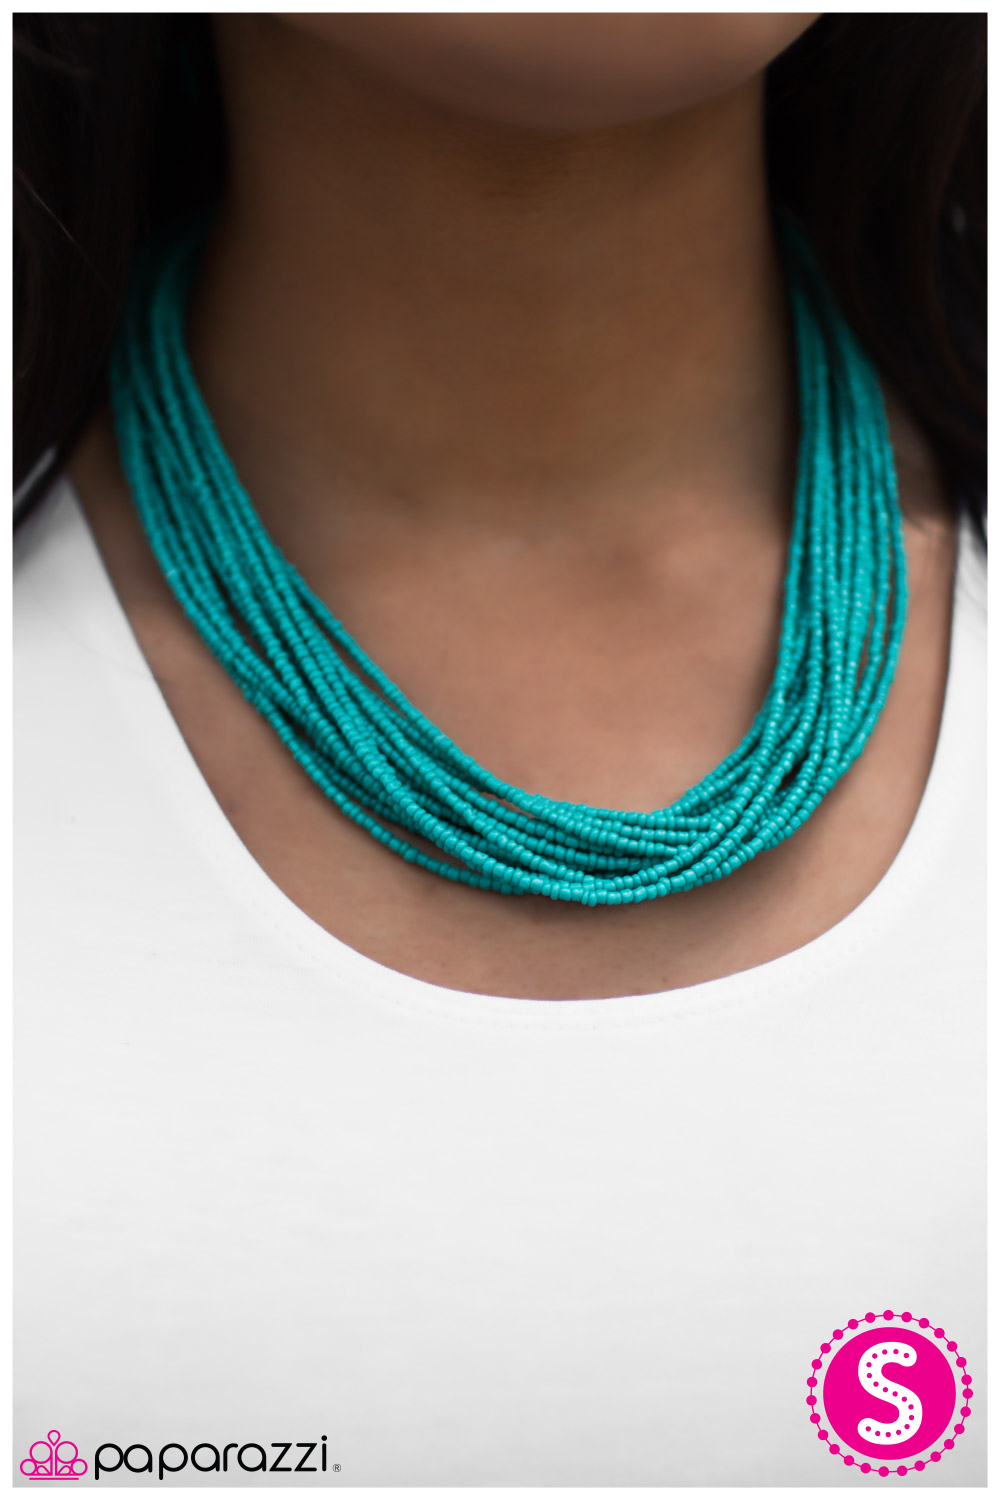 Wide Open Spaces Blue Paparazzi 5 Jewelry Join Or